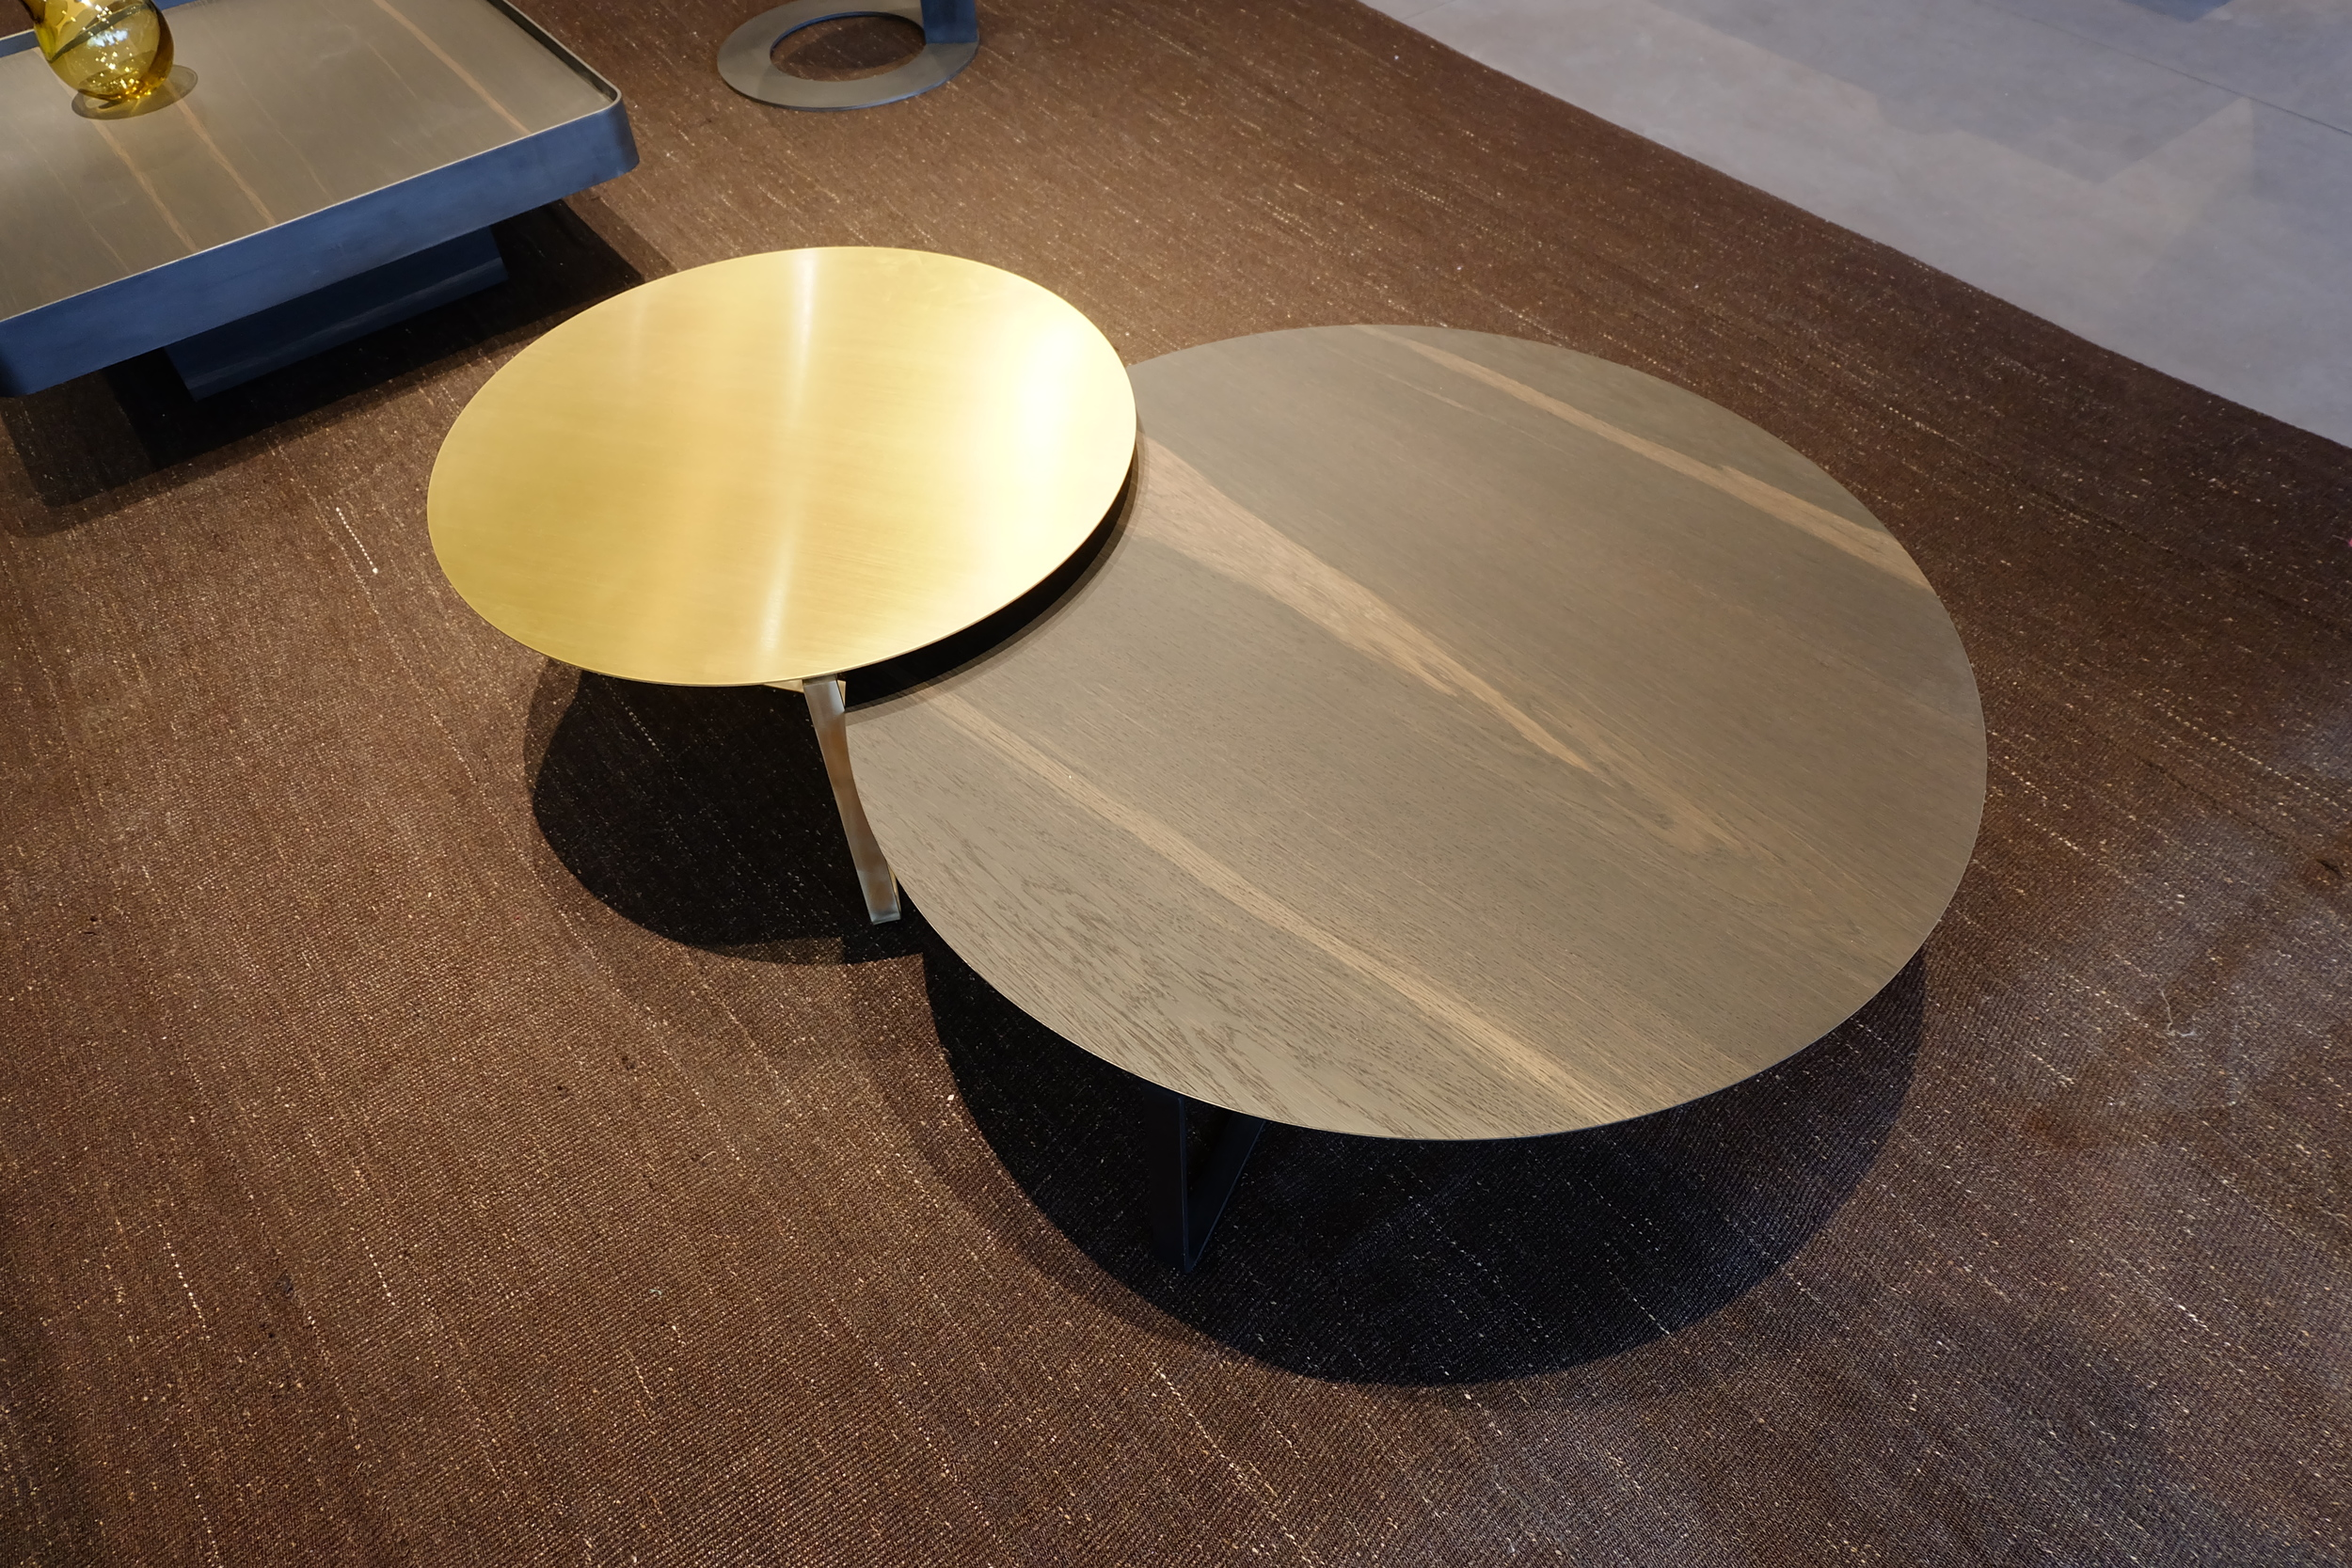 Maison & Objet 2016 Highlights - Brass and Walnut veneer is a perfect match for contemporary interior design scheme | MSH Agency